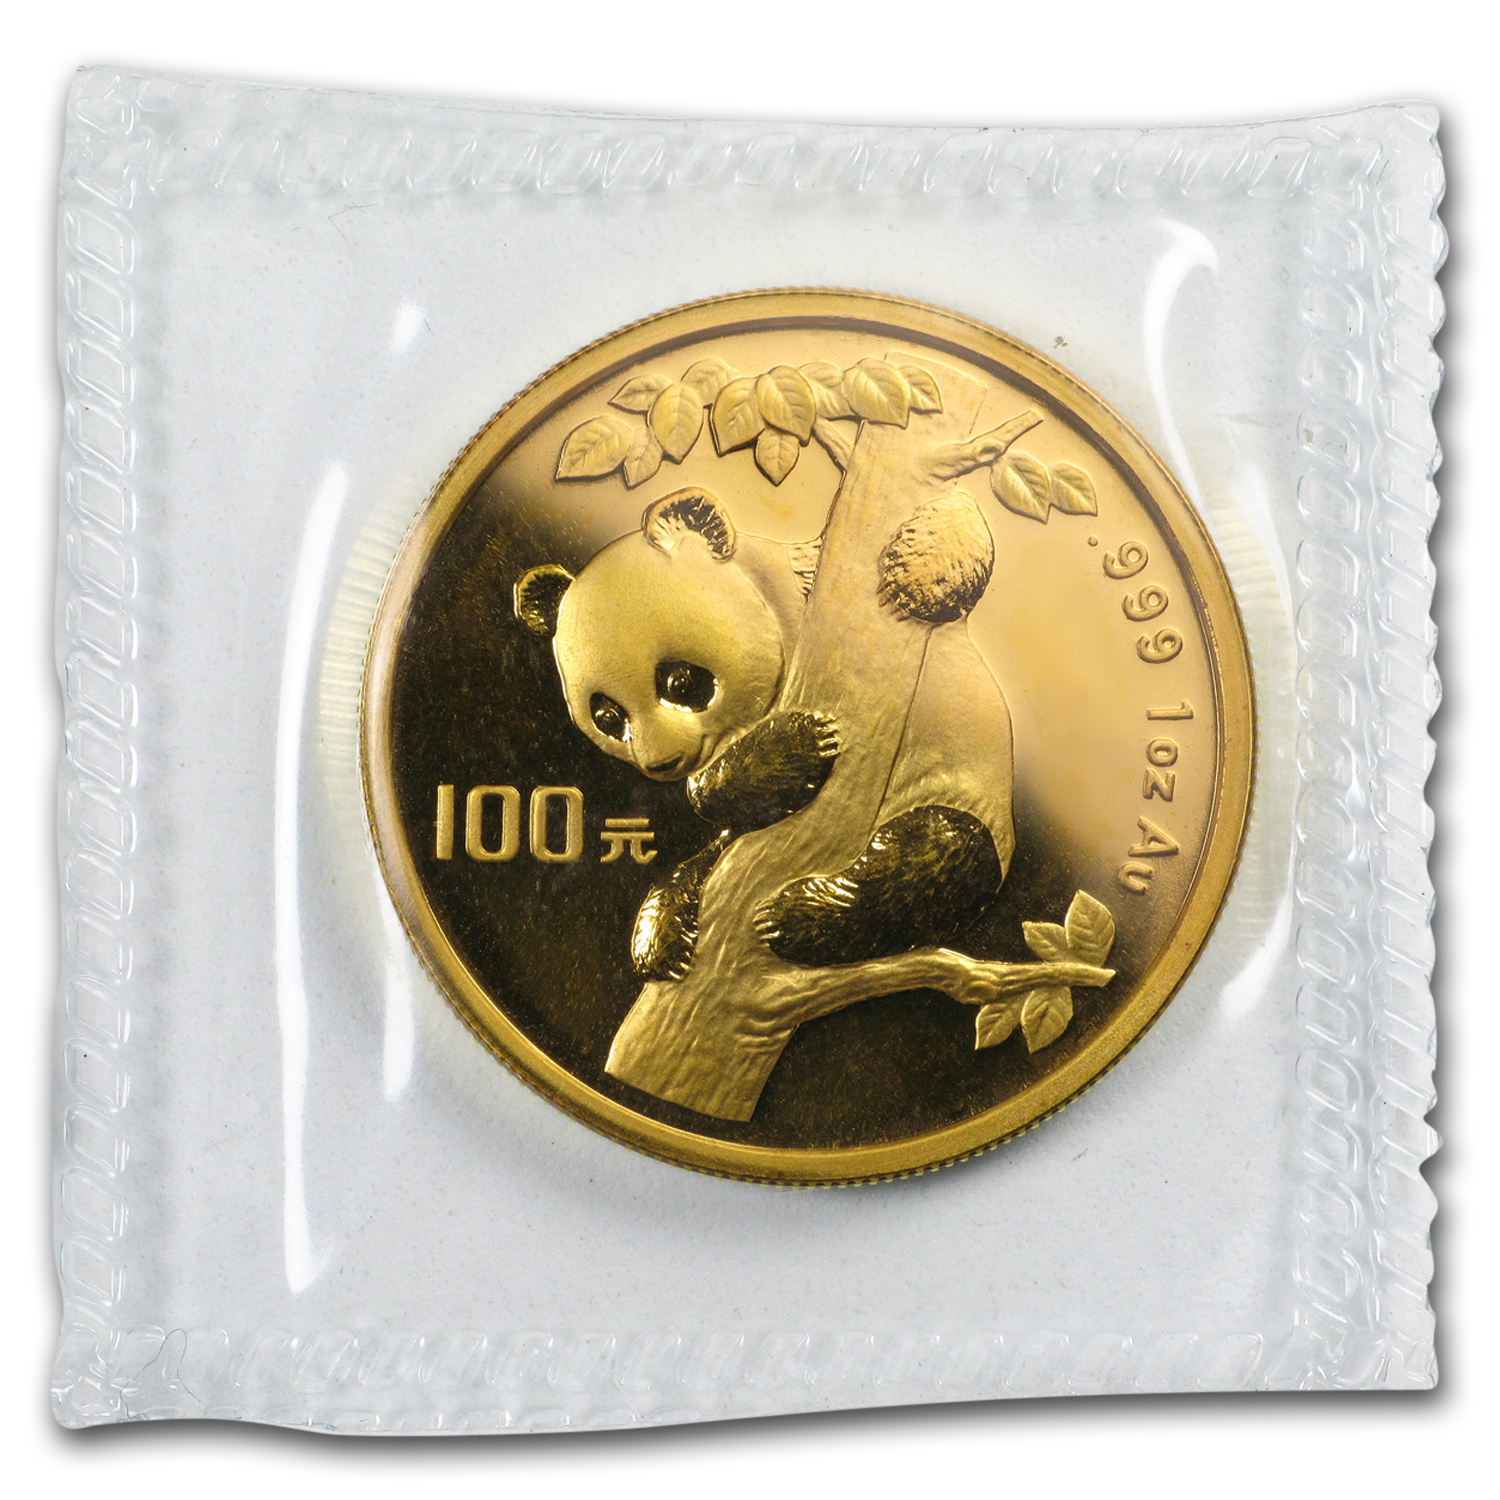 1996 1 oz Gold Chinese Panda - Small Date (Sealed)